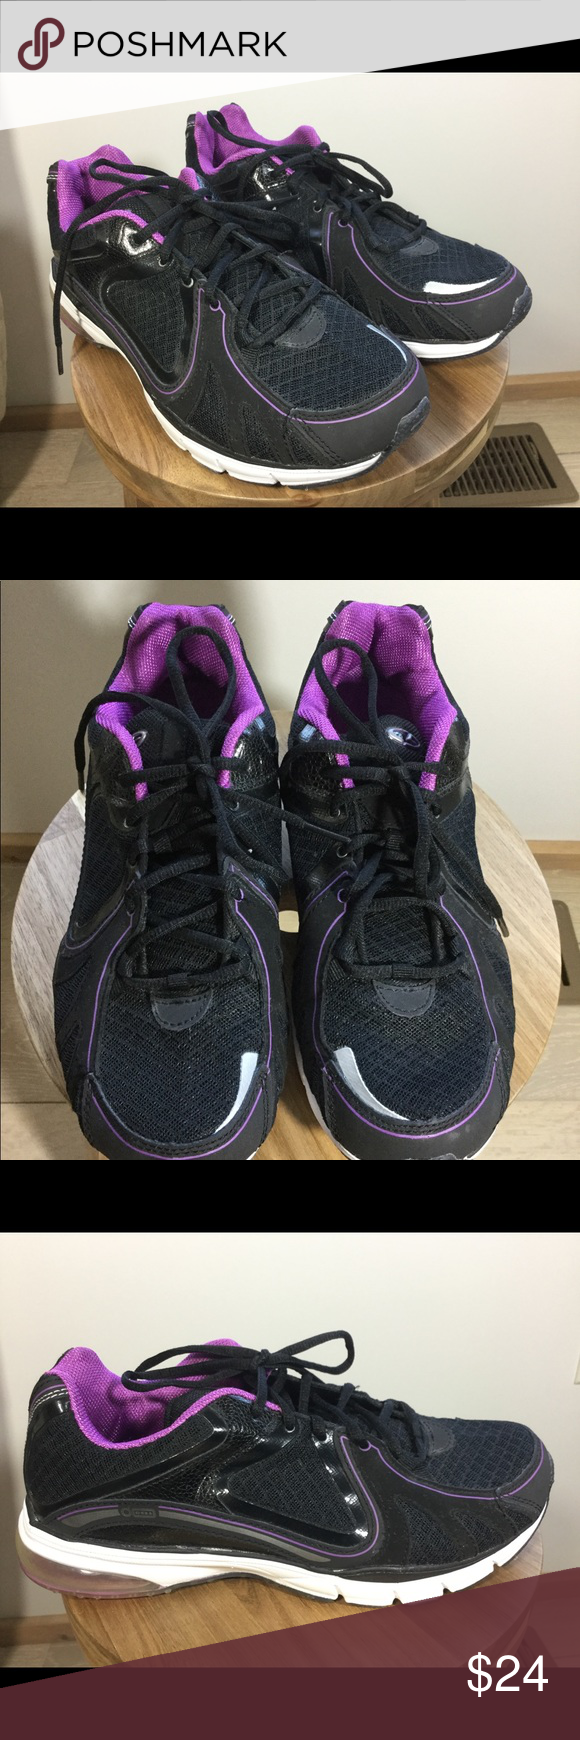 ceee7e51e05 C9 by Champion Interval Black Training Sneakers C9 by Champion Women s  Interval Black Purple Size 8.5 Training Sneakers. Condition is Pre-owned.